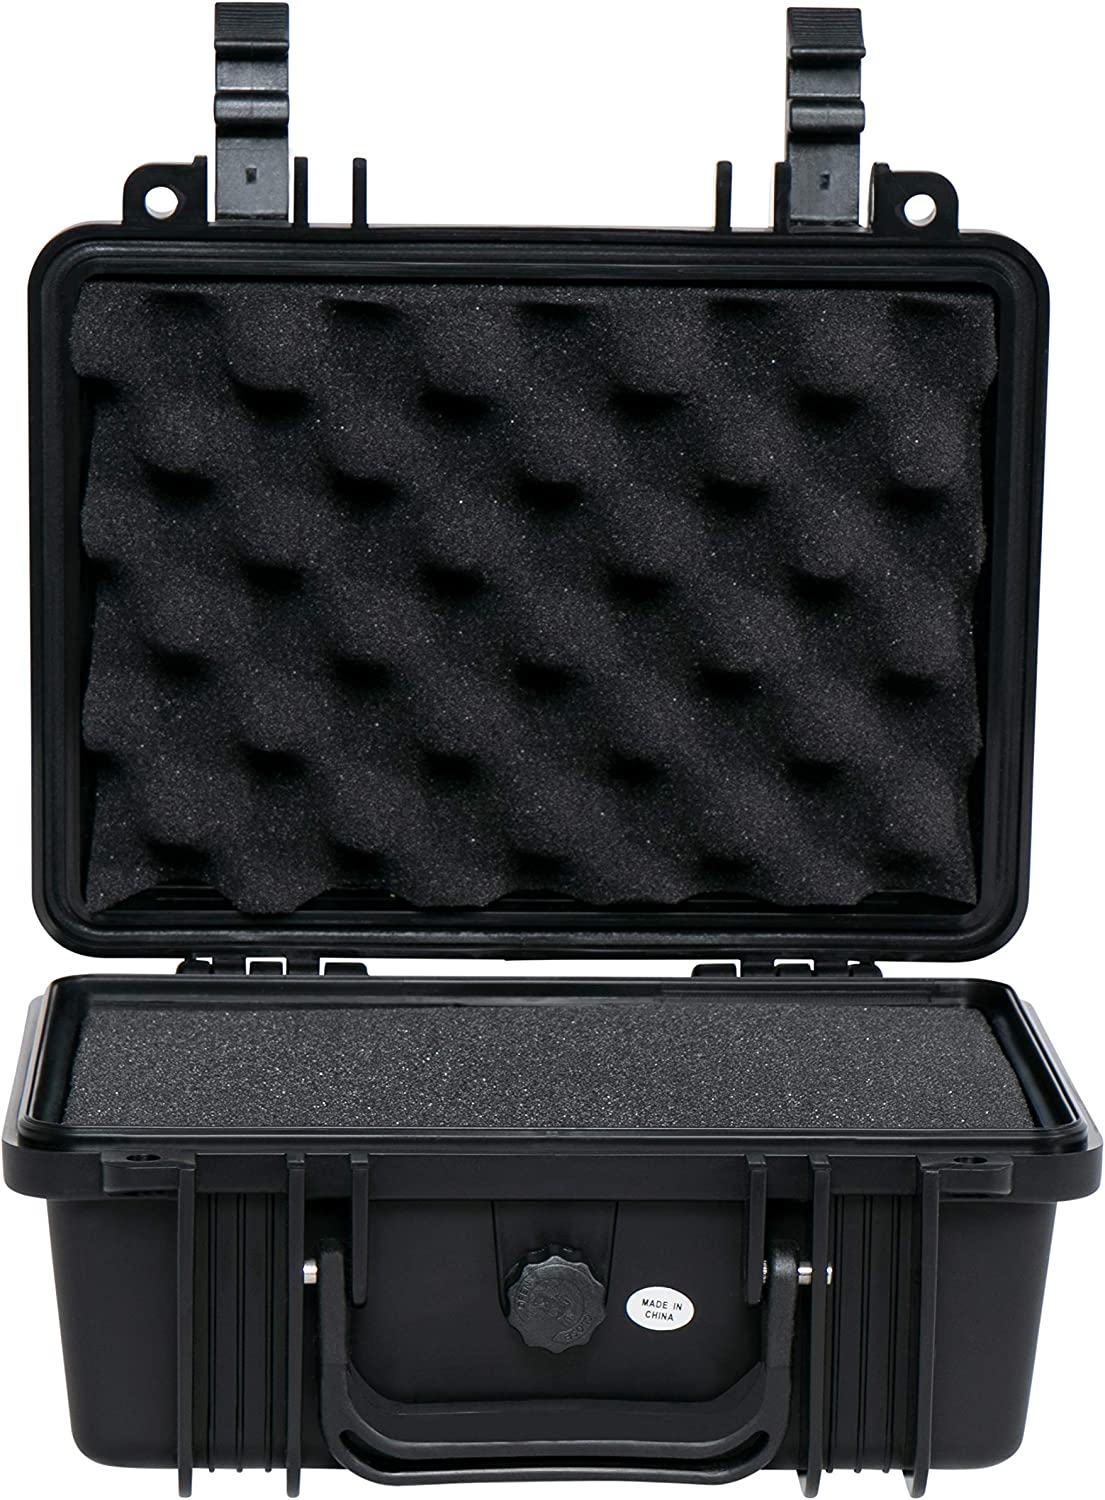 Durabox All Weather Travel Hard Case with Customizable Foam for Camera, Electronics and Gear (Small 10